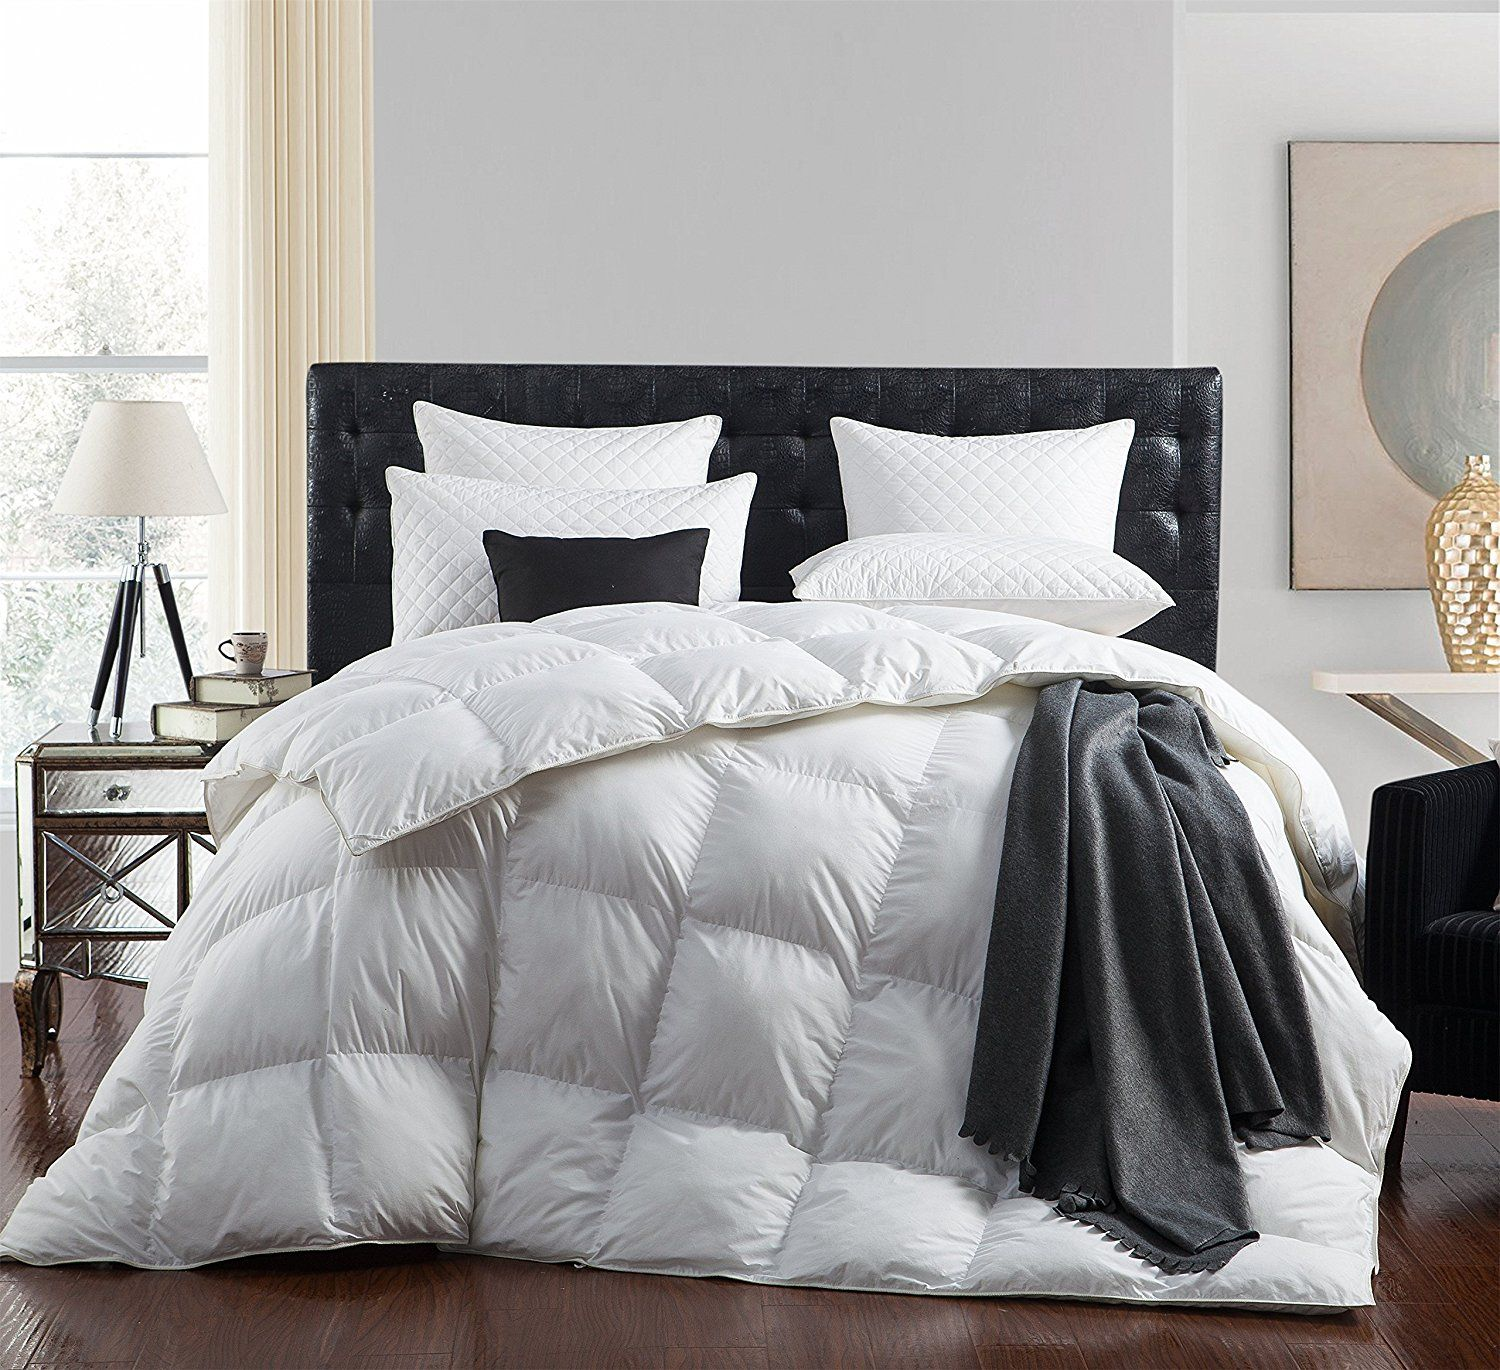 store luxury royal the comforter down baffled duvets colored company comforters legends and hi king res